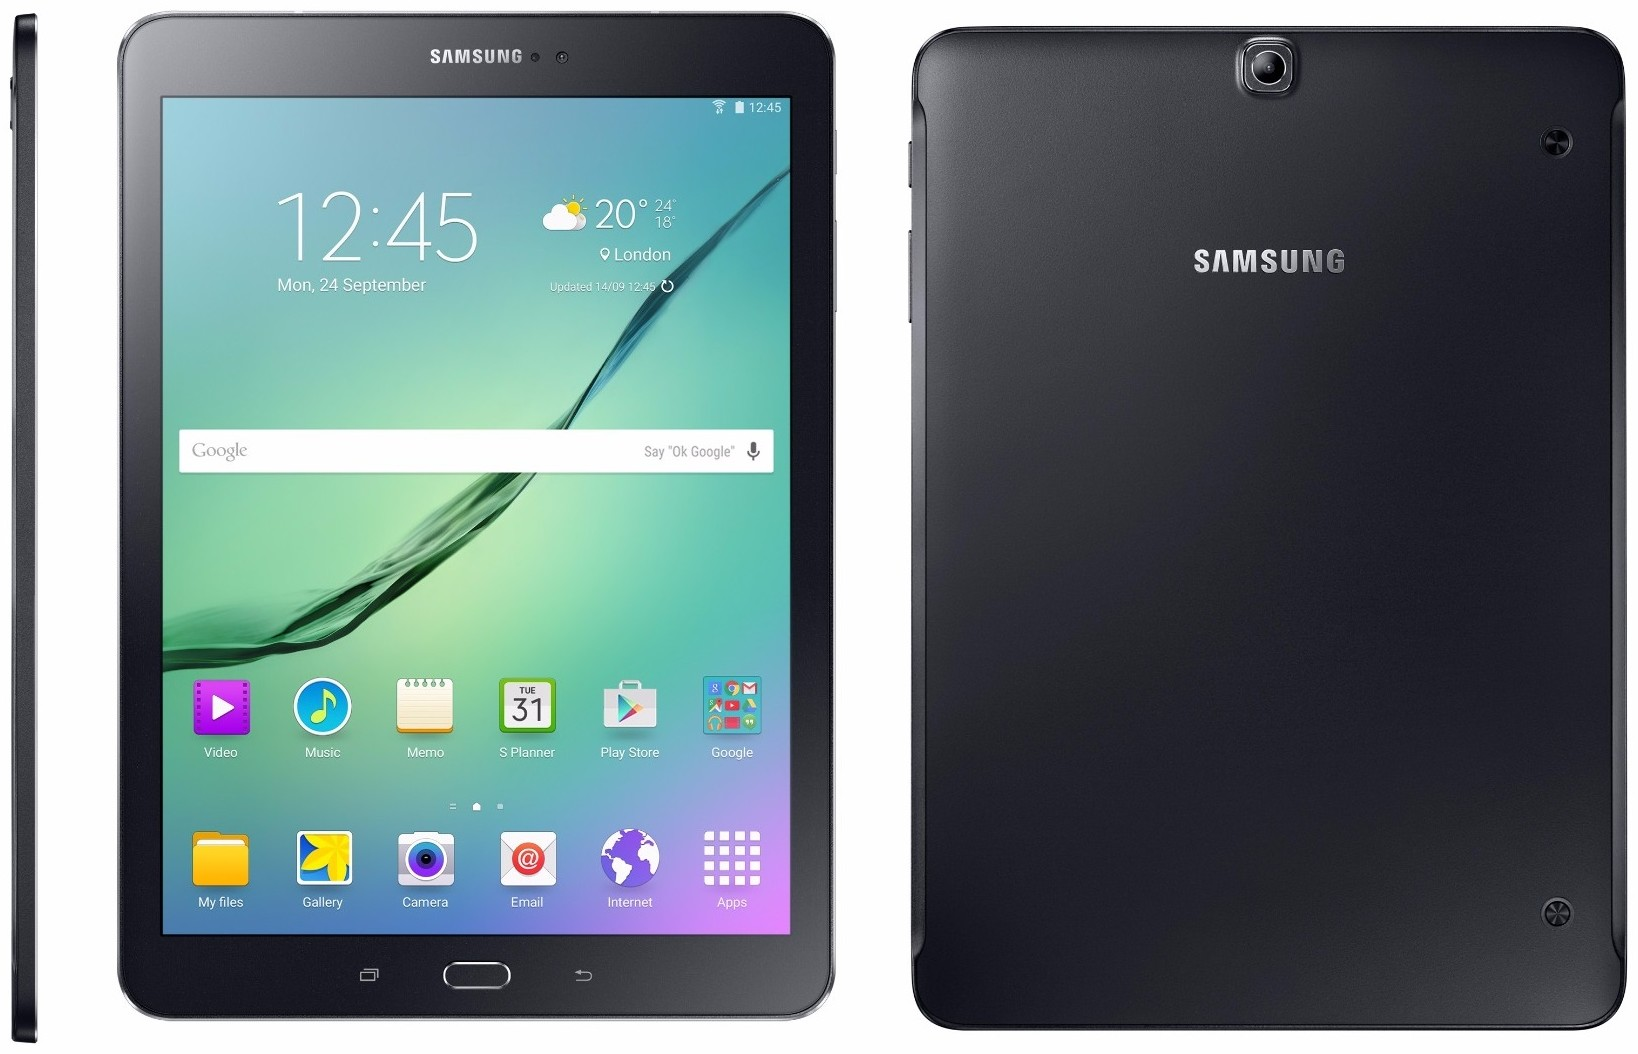 Built for ultra-fast performance, the thin and lightweight Samsung Galaxy Tab S2 features a brilliant